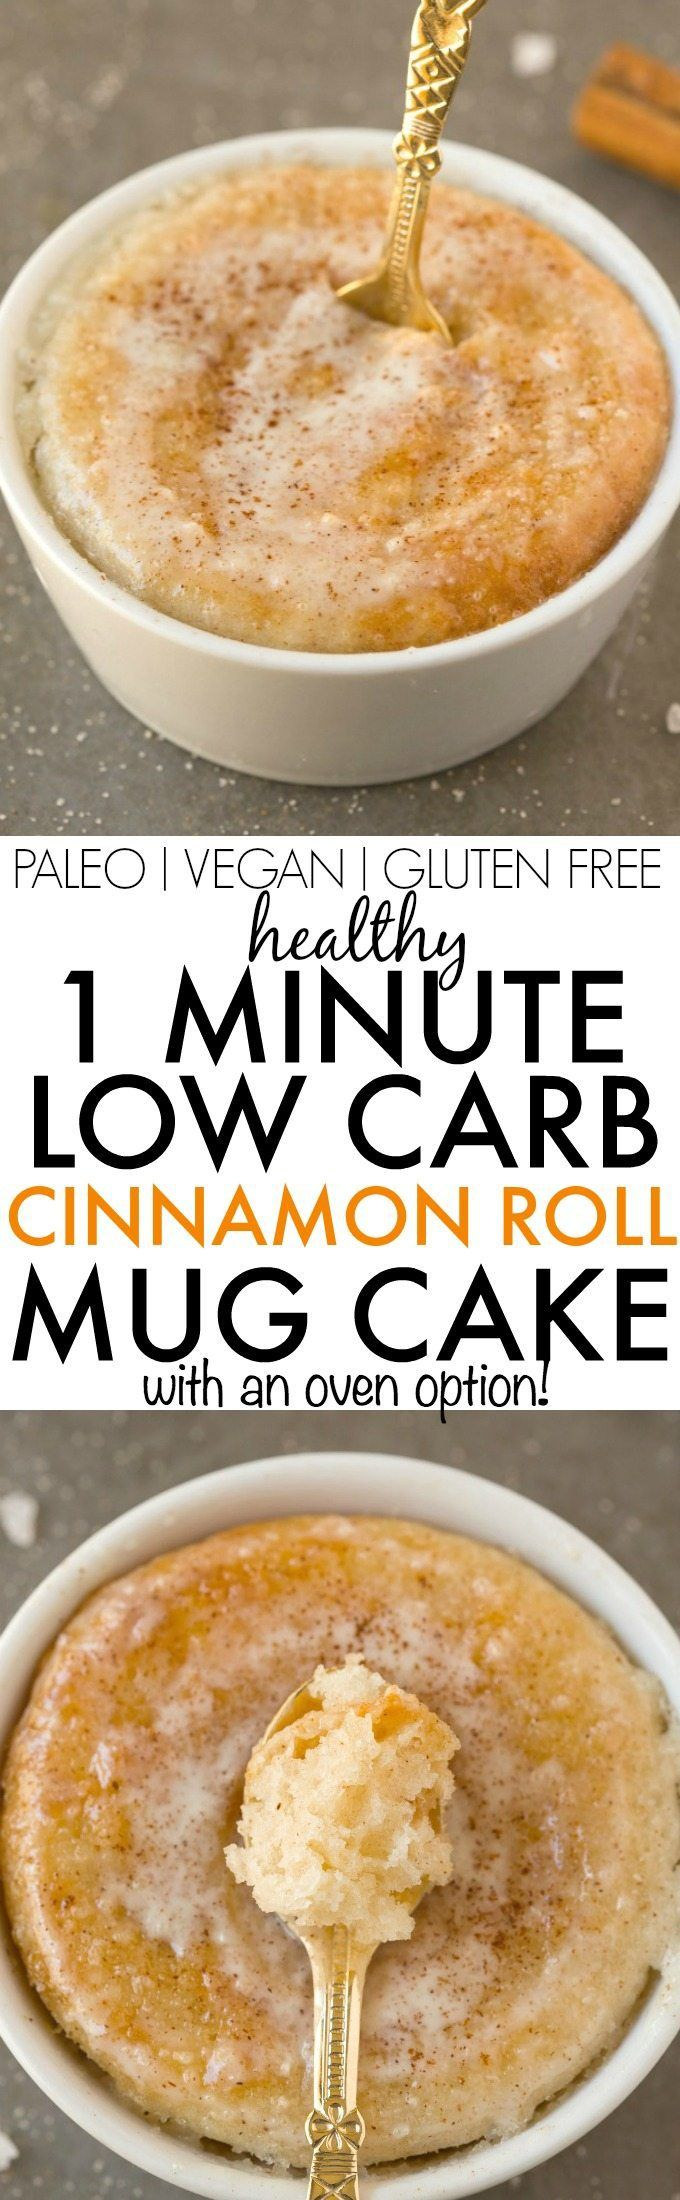 Healthy 1 Minute LOW CARB Cinnamon Roll Mug Cake- Light, fluffy and moist in the inside! Single servinf and packed full of protein and NO sugar whatsoever-Even the creamy glaze! {vegan, gluten free, paleo recipe}